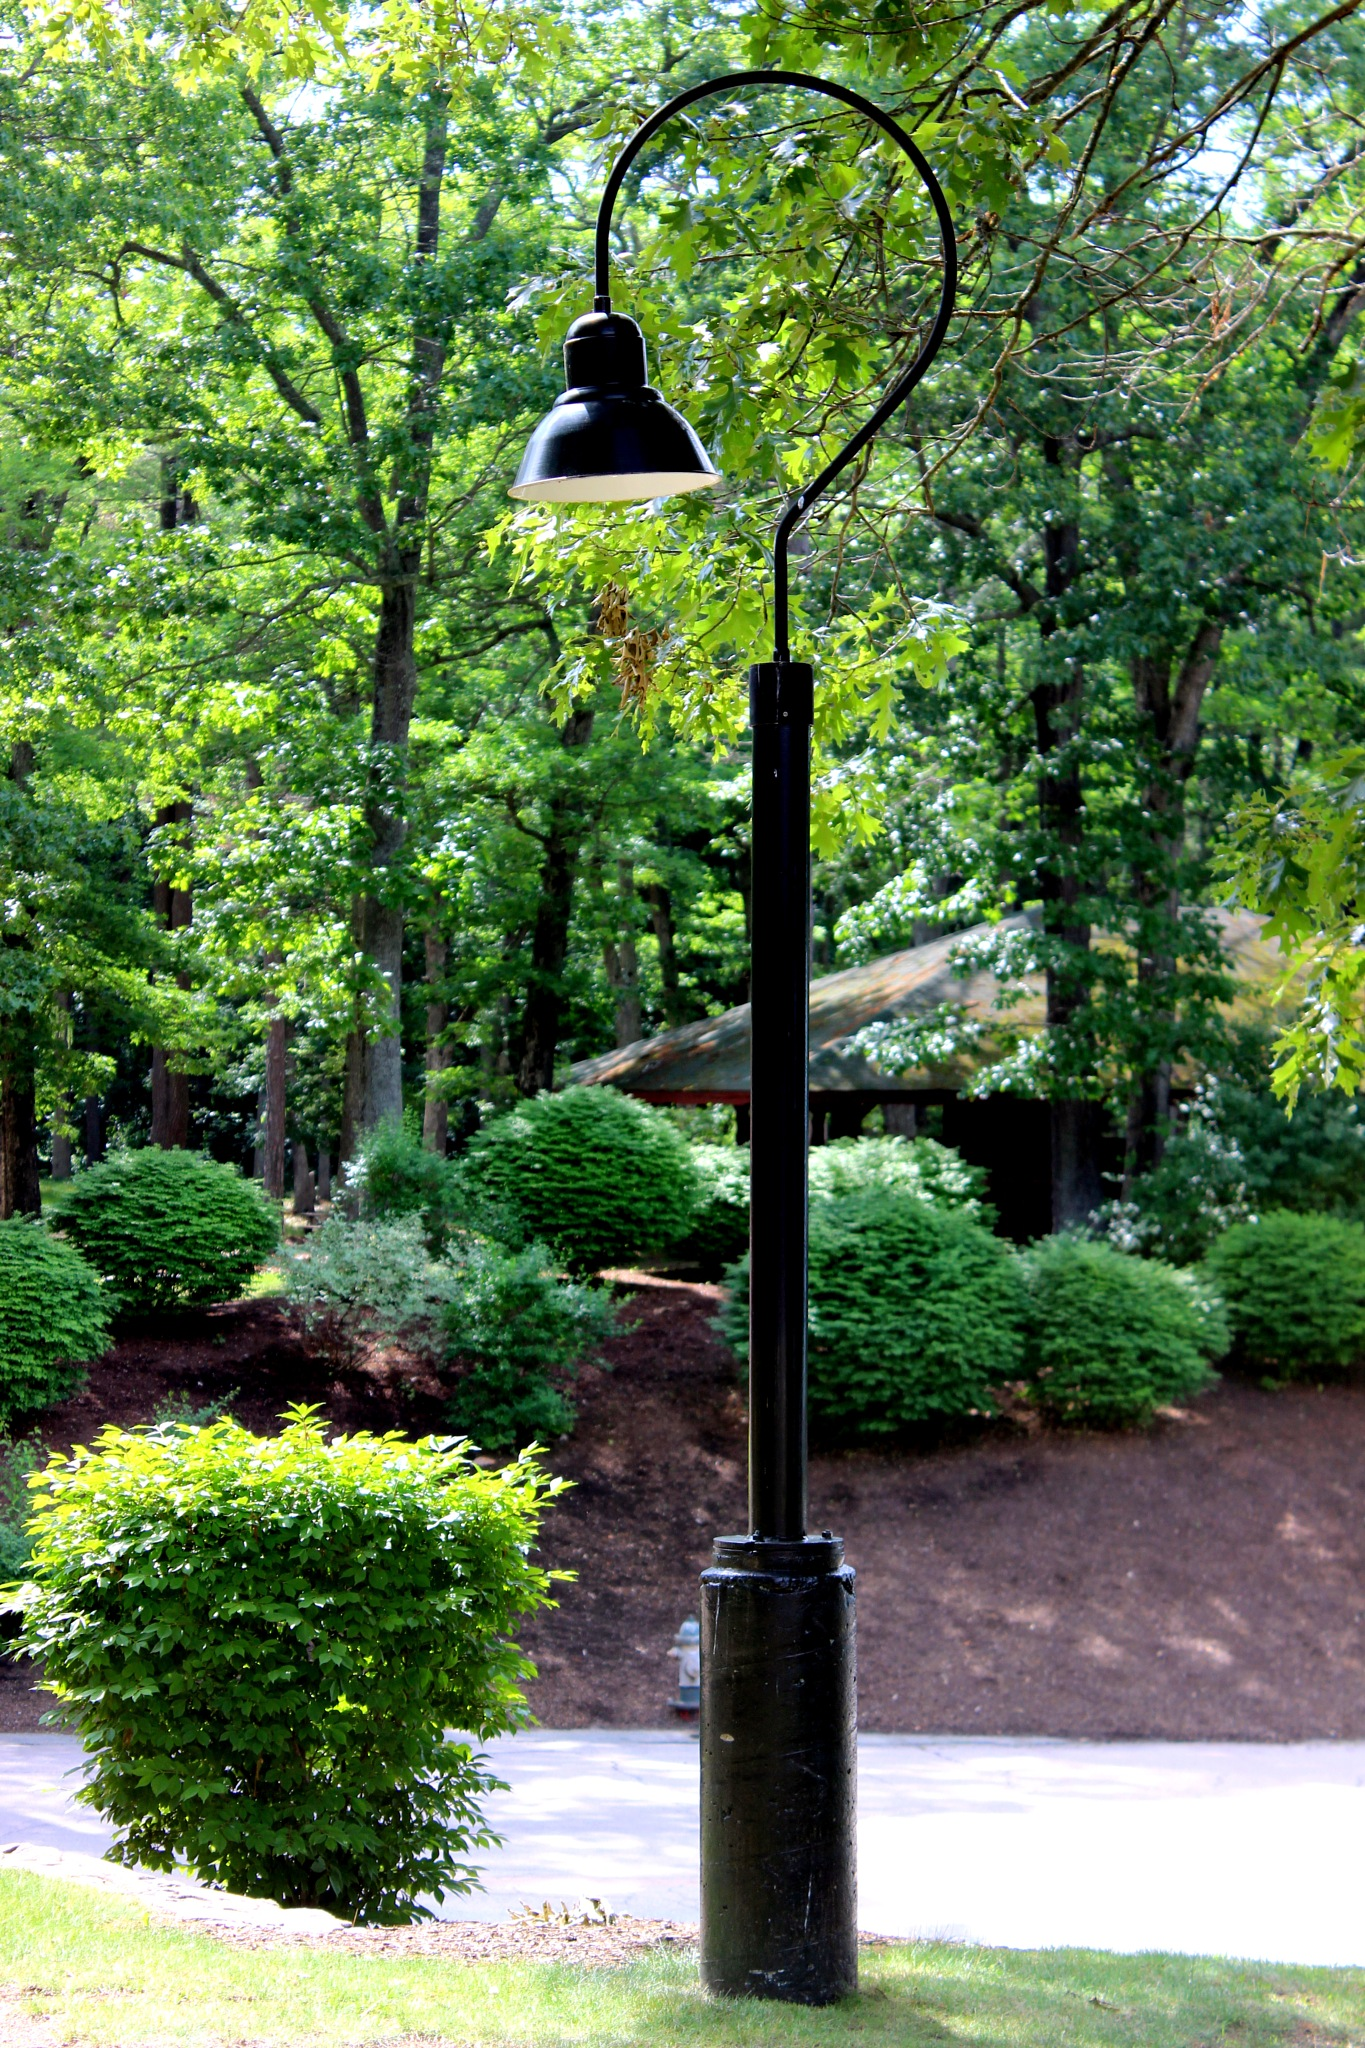 Street lamp by Janet519